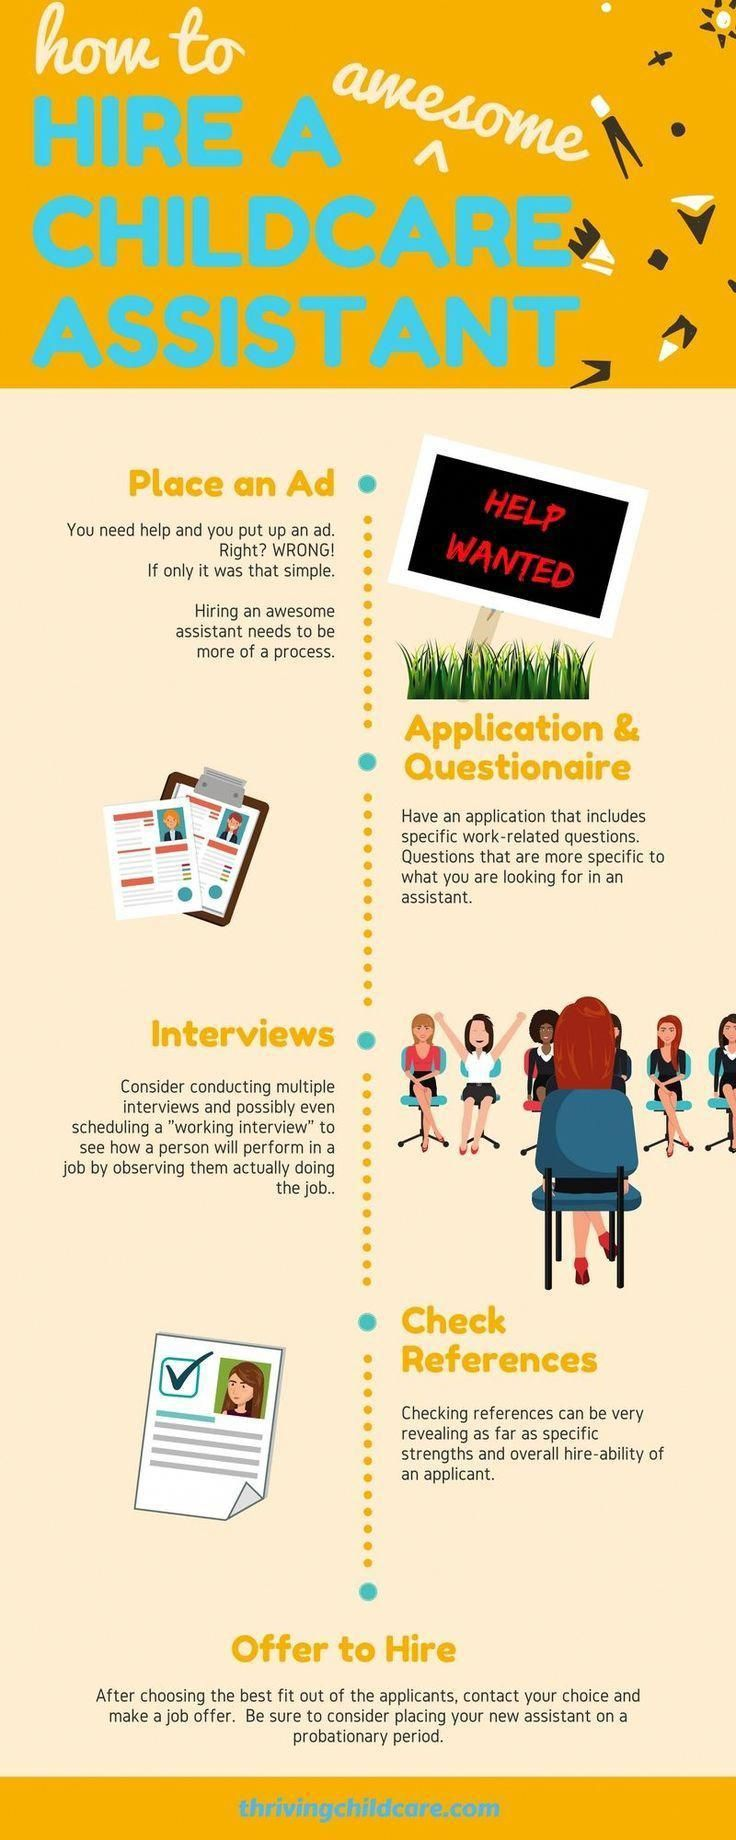 How to Hire a Childcare Assistant Childcare, Starting a